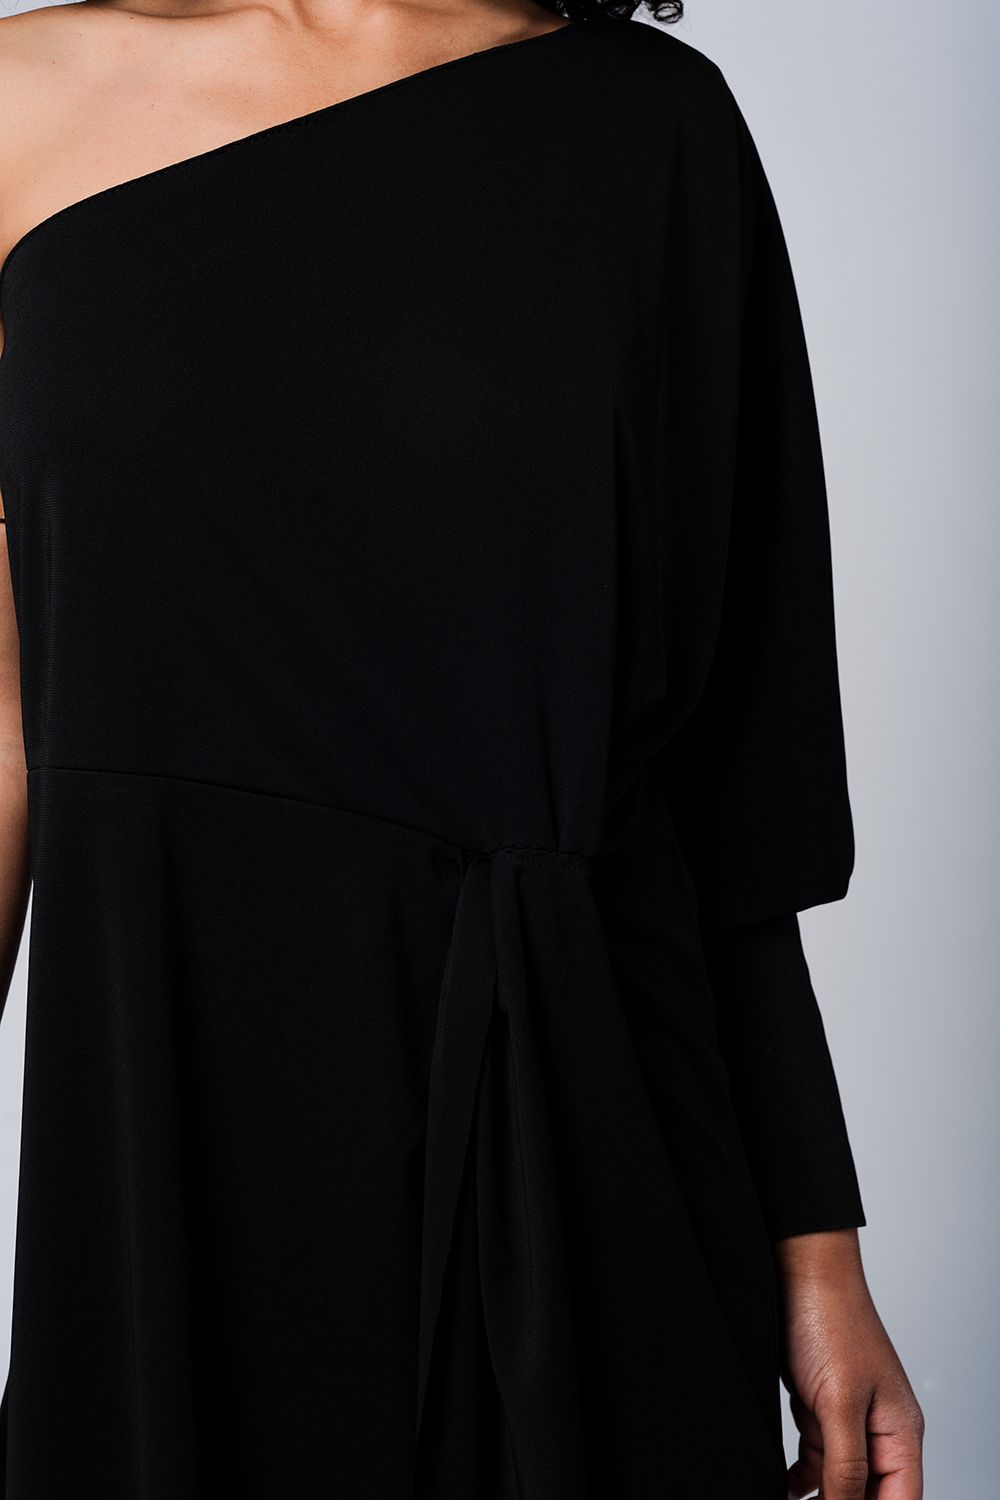 One Shoulder Black Dress